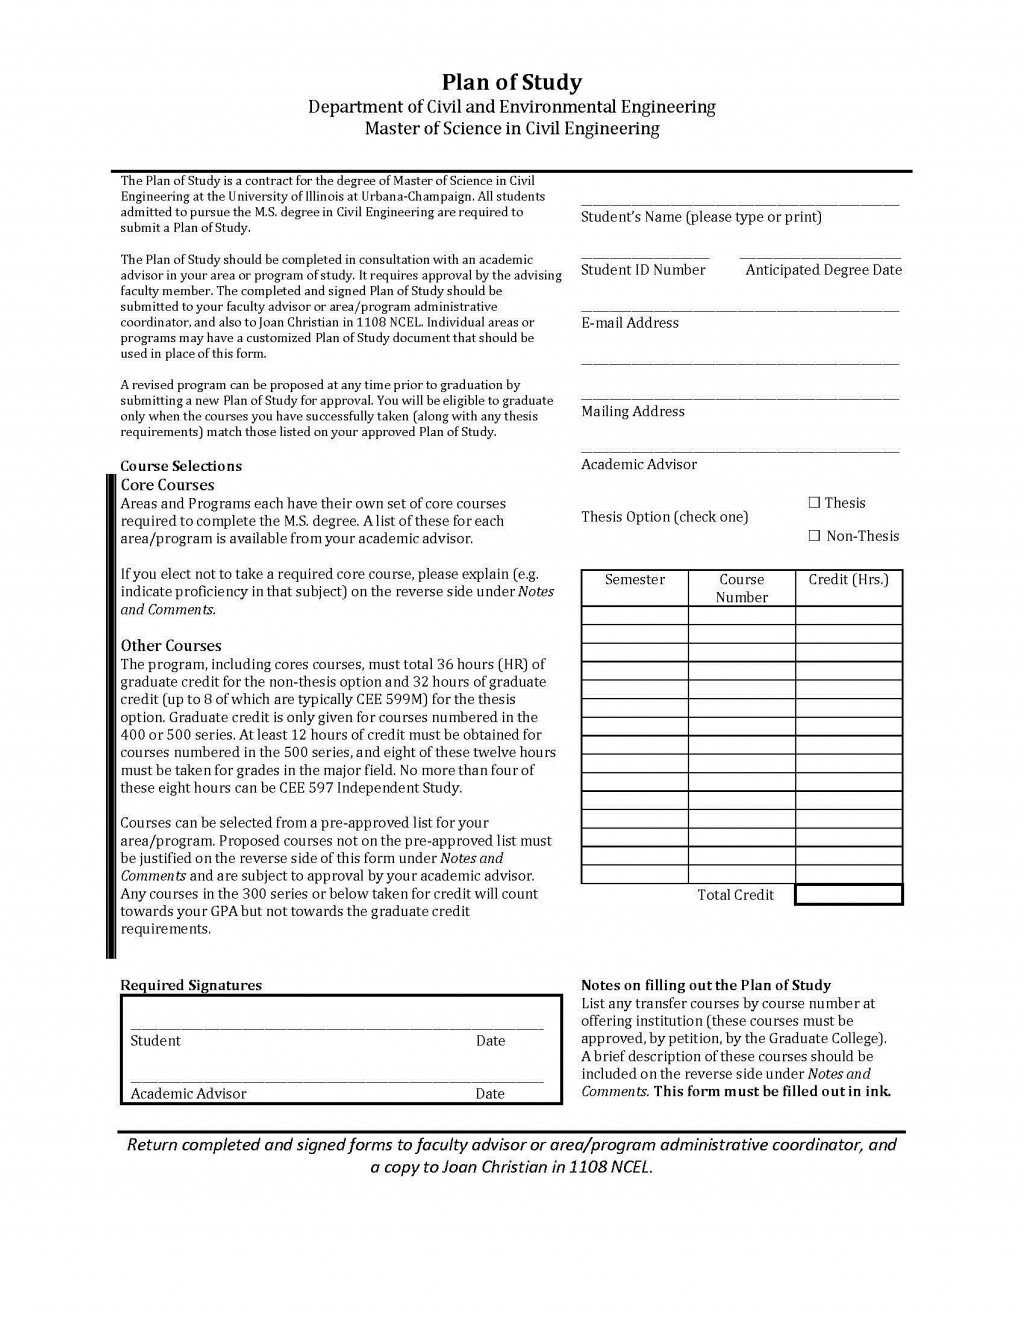 008 Plan Of Study Research Paper Marvelous Definition Slideshare Wikipedia Terms Large